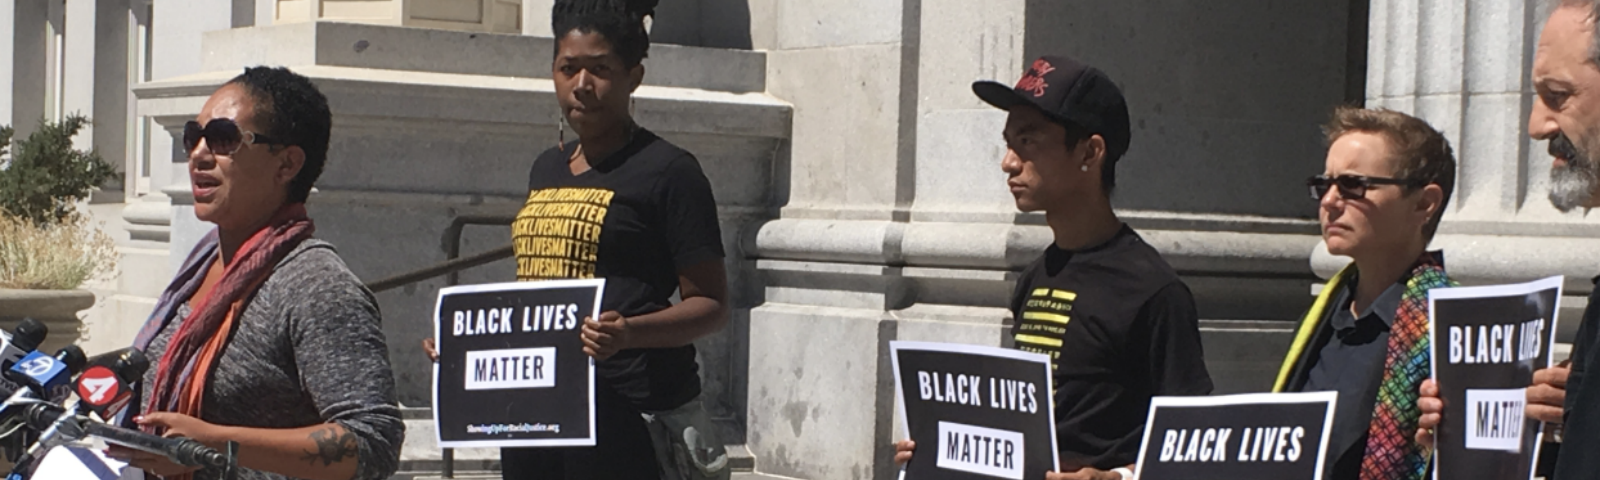 """Cat brooks speaks at a mic in front of a grey building; 4 people holding """"Black Lives Matter"""" signs stand behind her"""